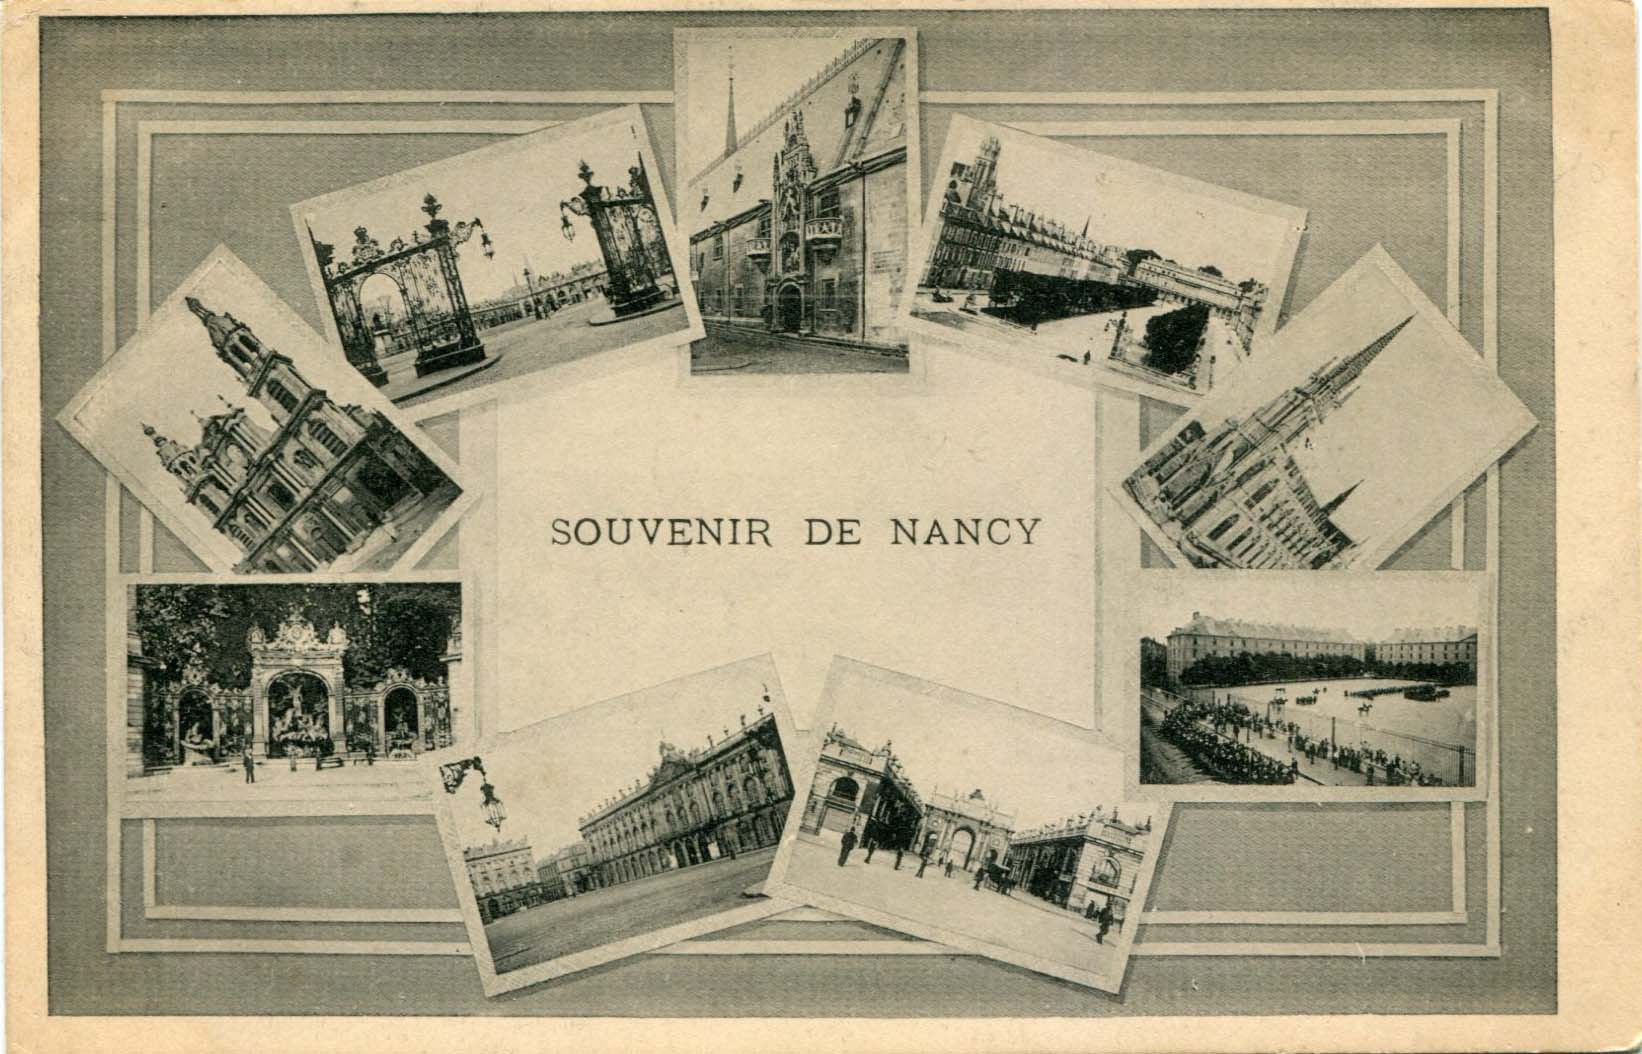 001a Souvenir de Nancy